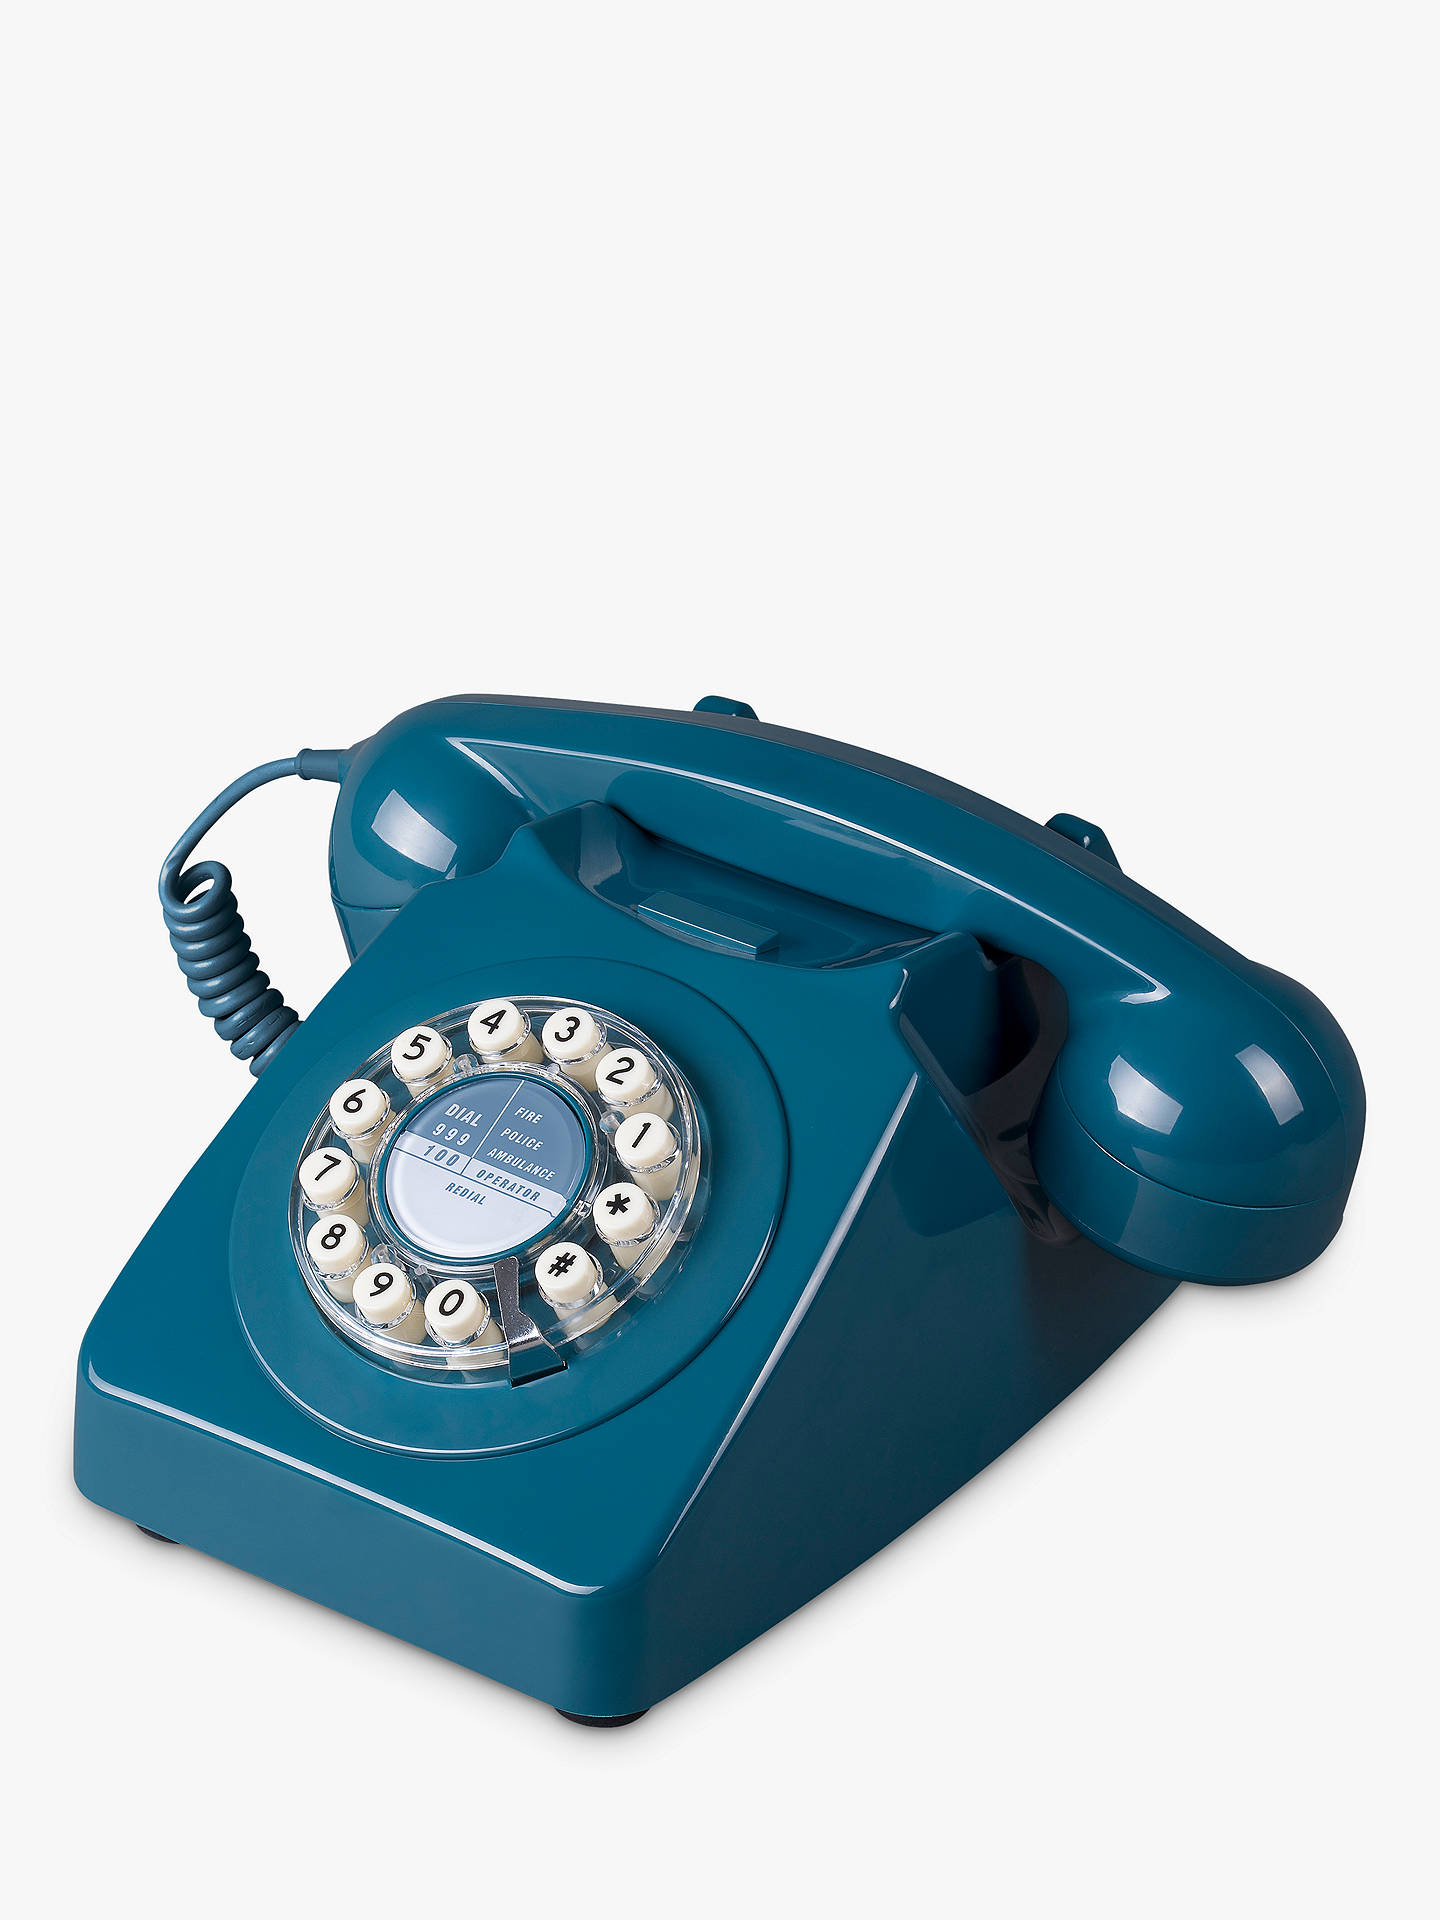 Buy Wild & Wolf 746 1960s Corded Telephone, Biscay Blue Online at johnlewis.com